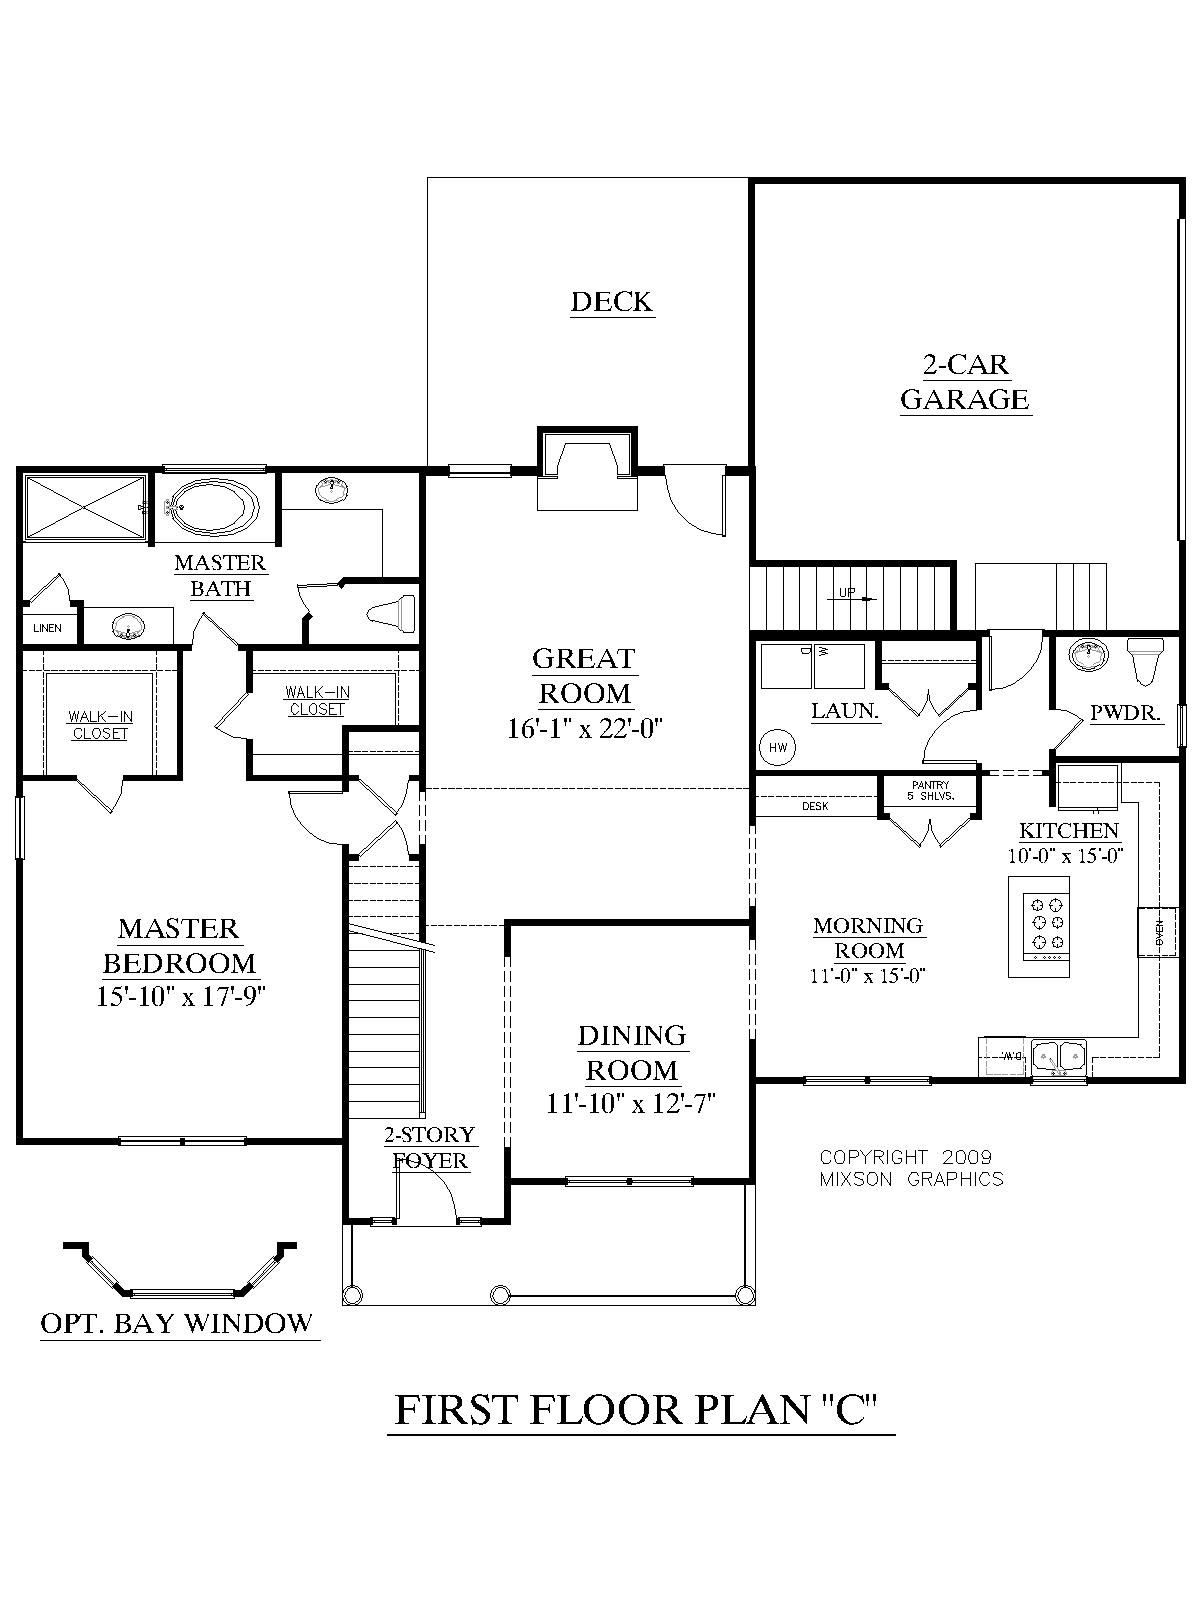 House plan 2675 c longcreek c first floor traditional 2 for Homes with master bedroom on first floor